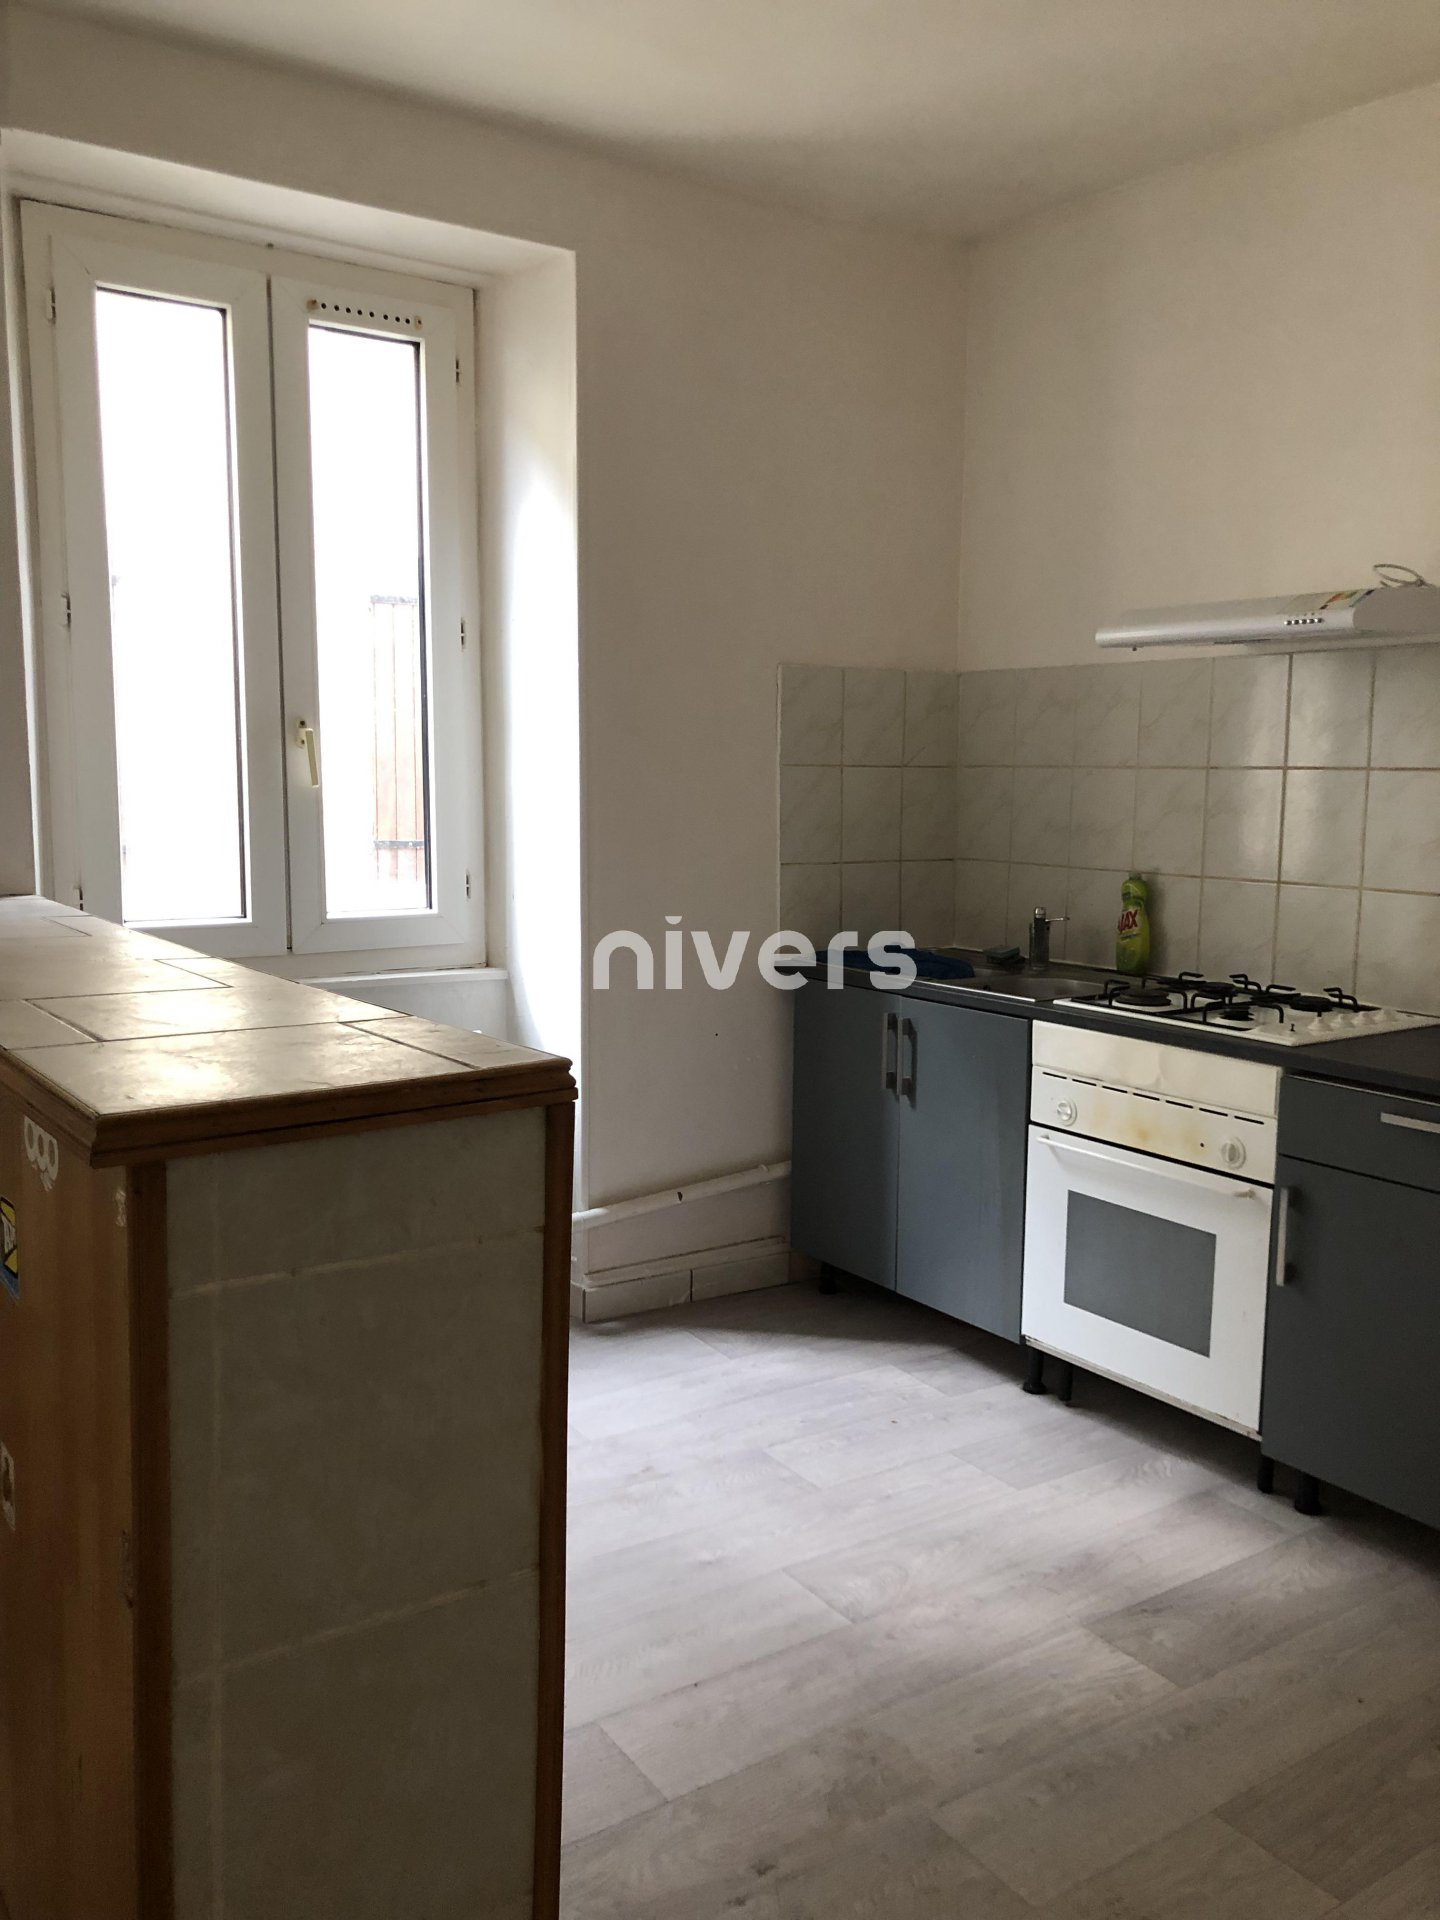 Appartement T2- 52 m² - Centre ville